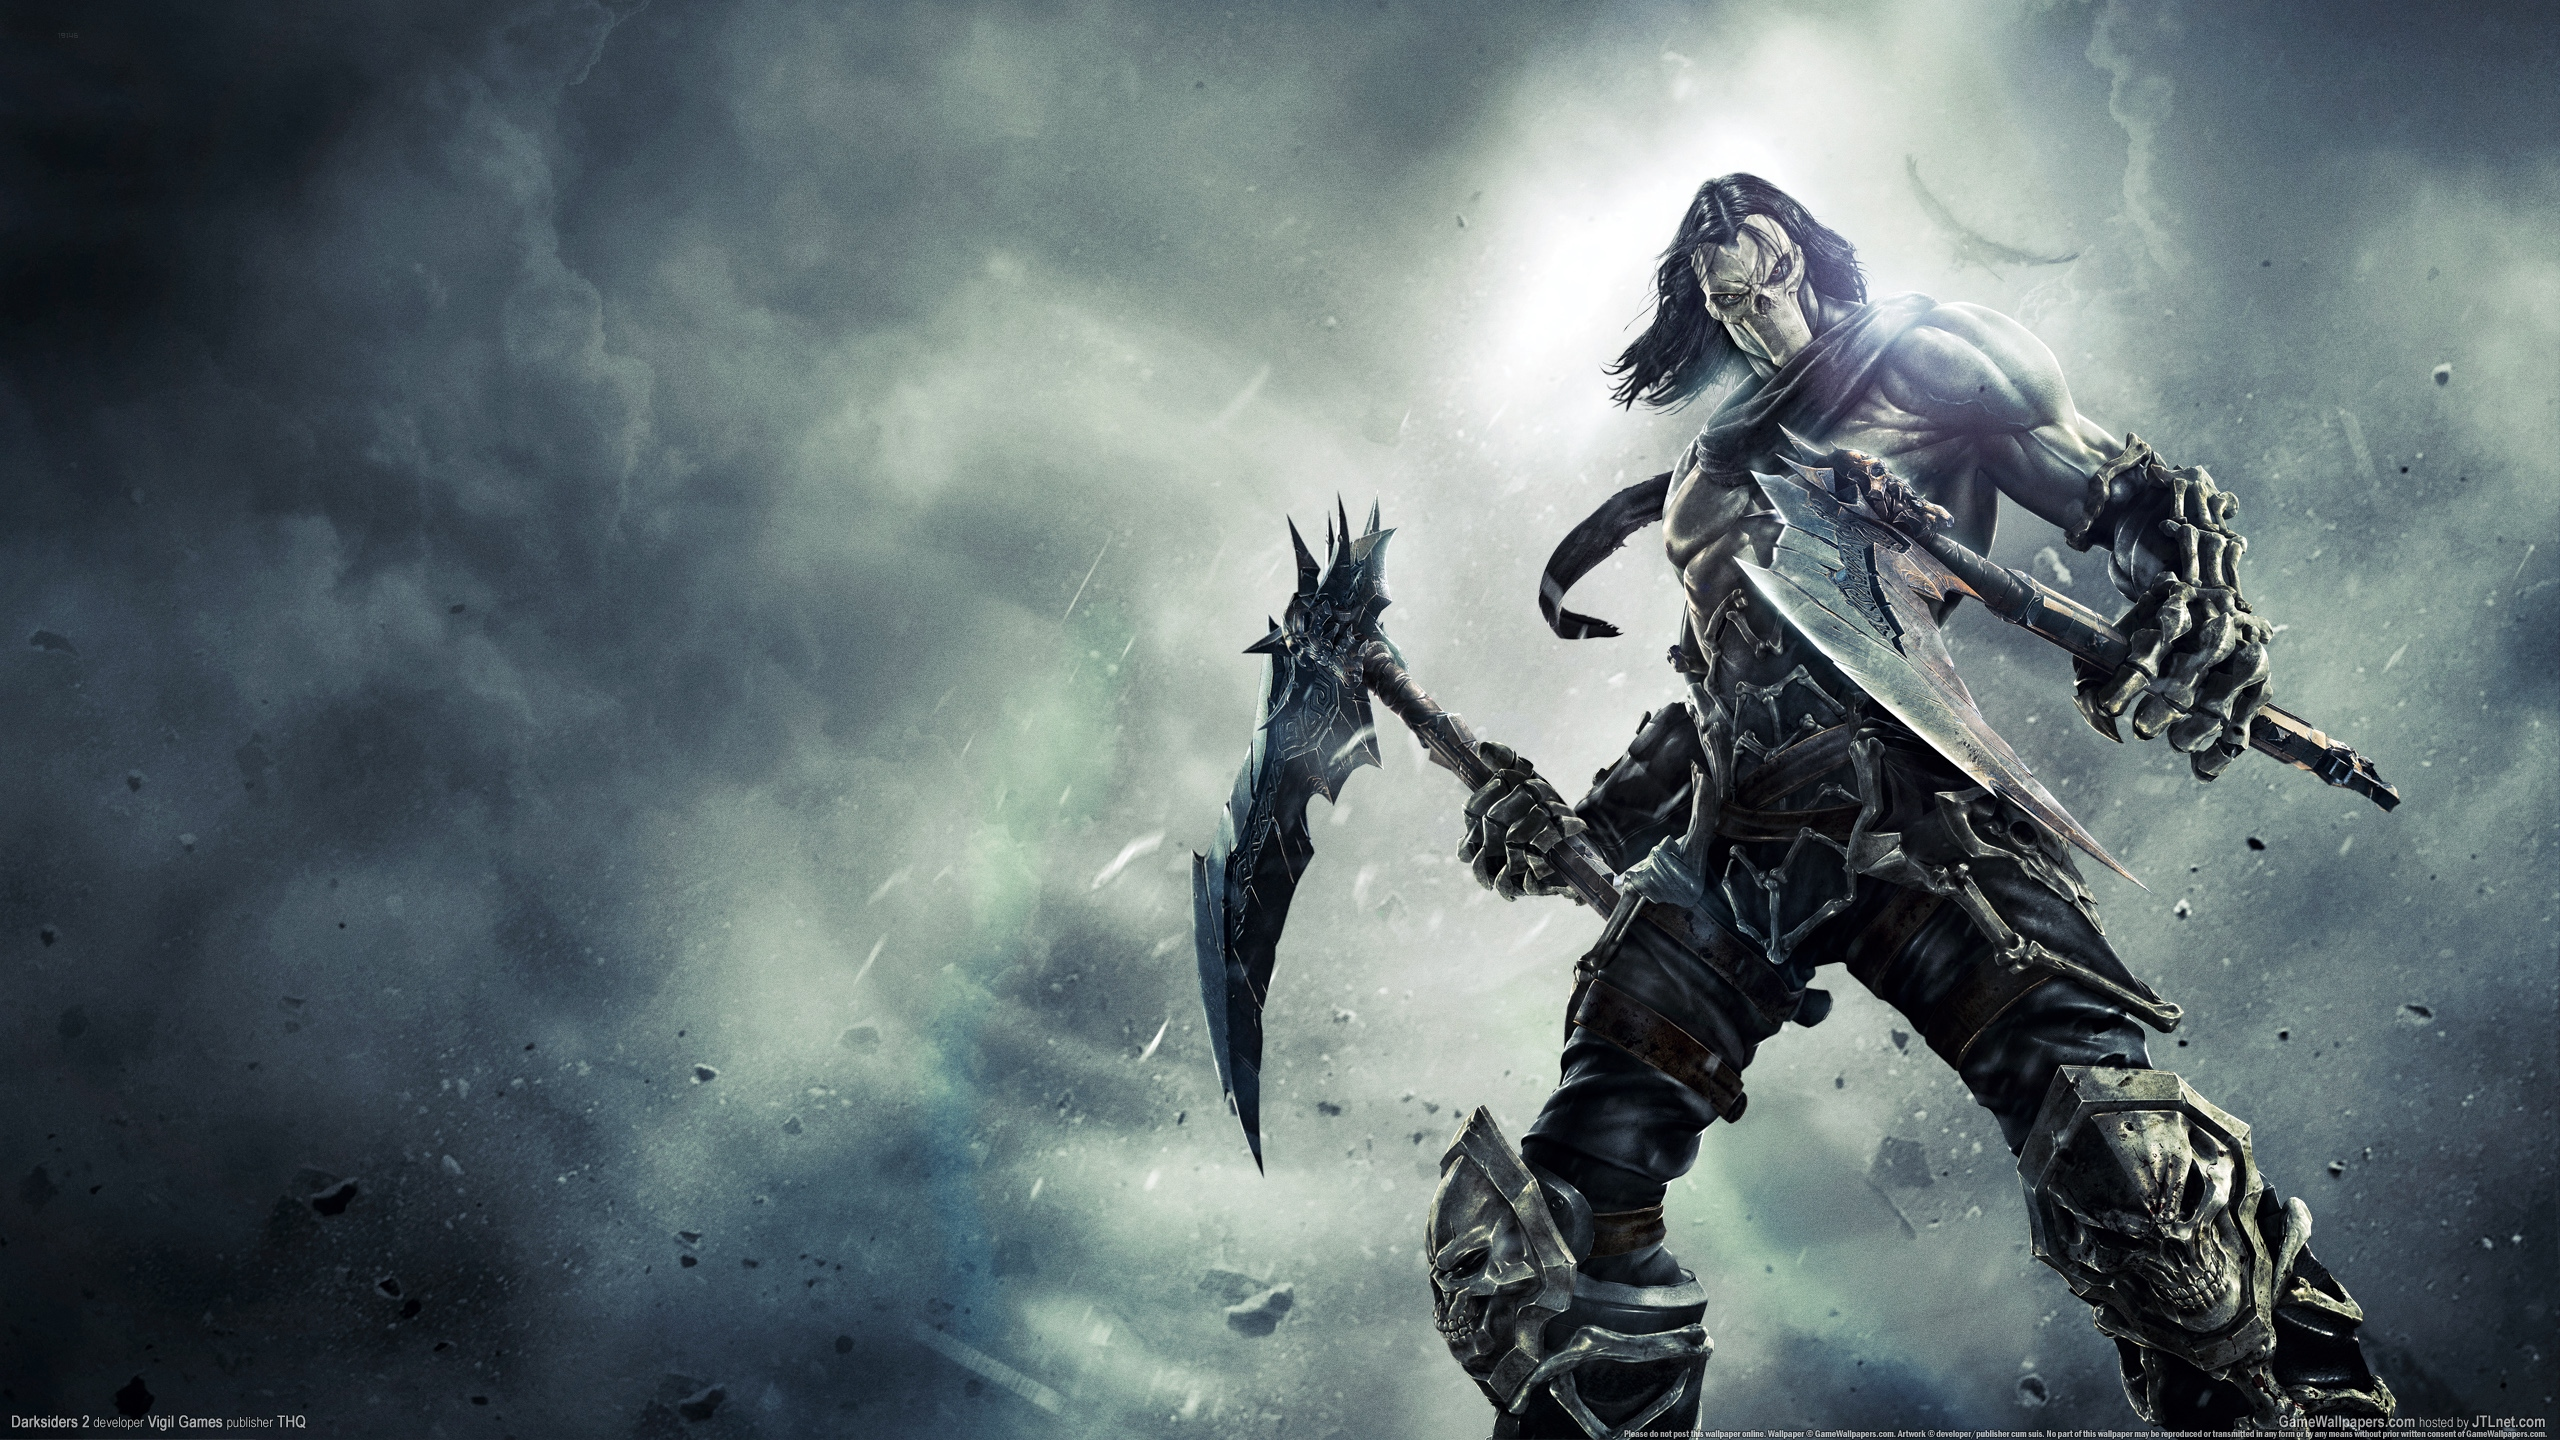 death - darksiders 2 art - id: 82980 - art abyss